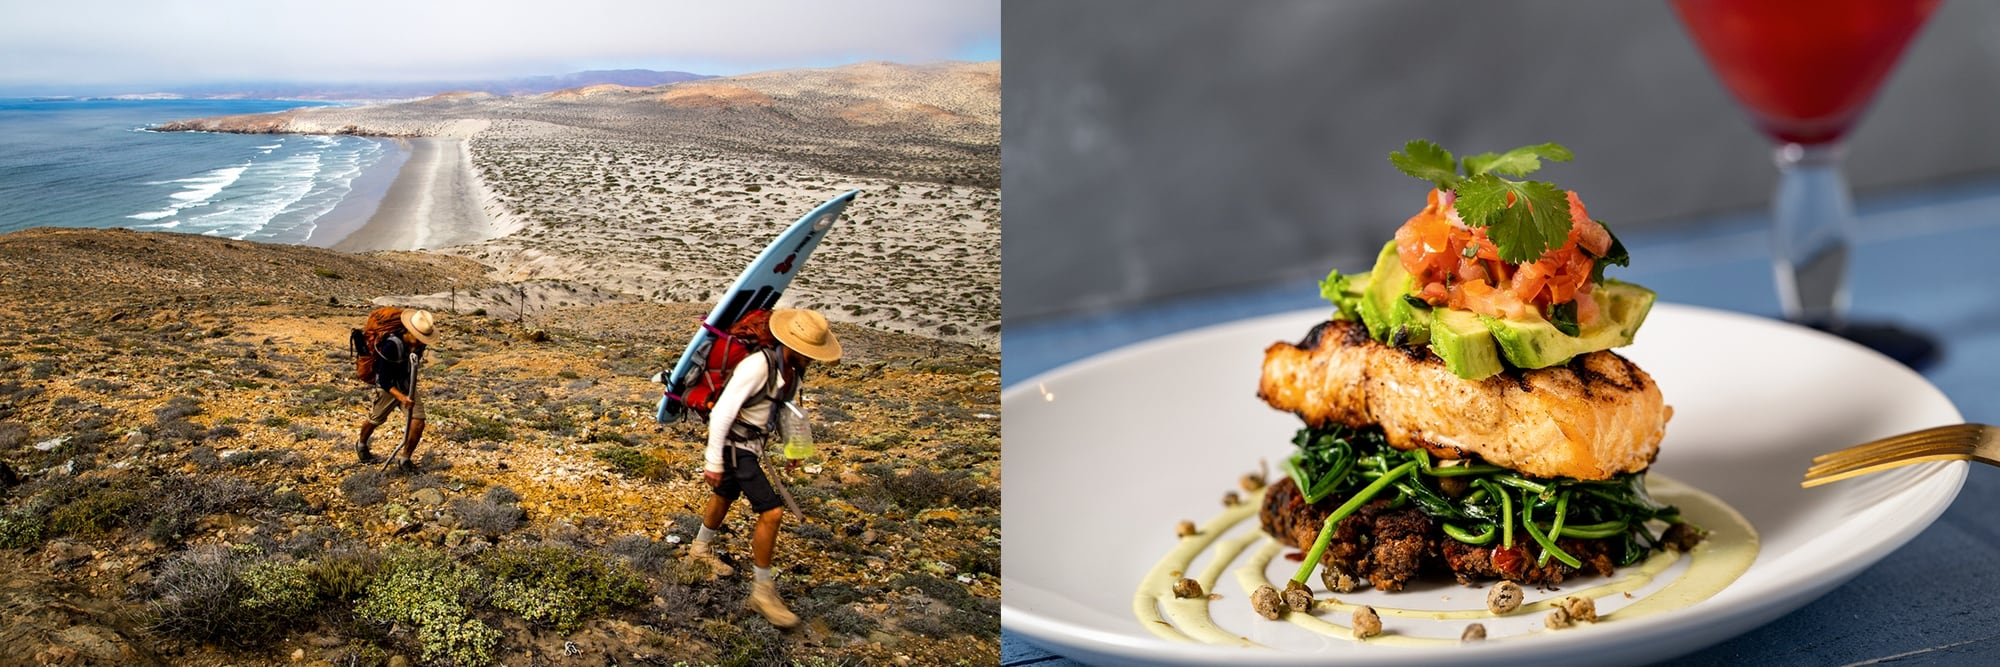 An image of the baja peninsula & salt & lime cabo grill's salmon